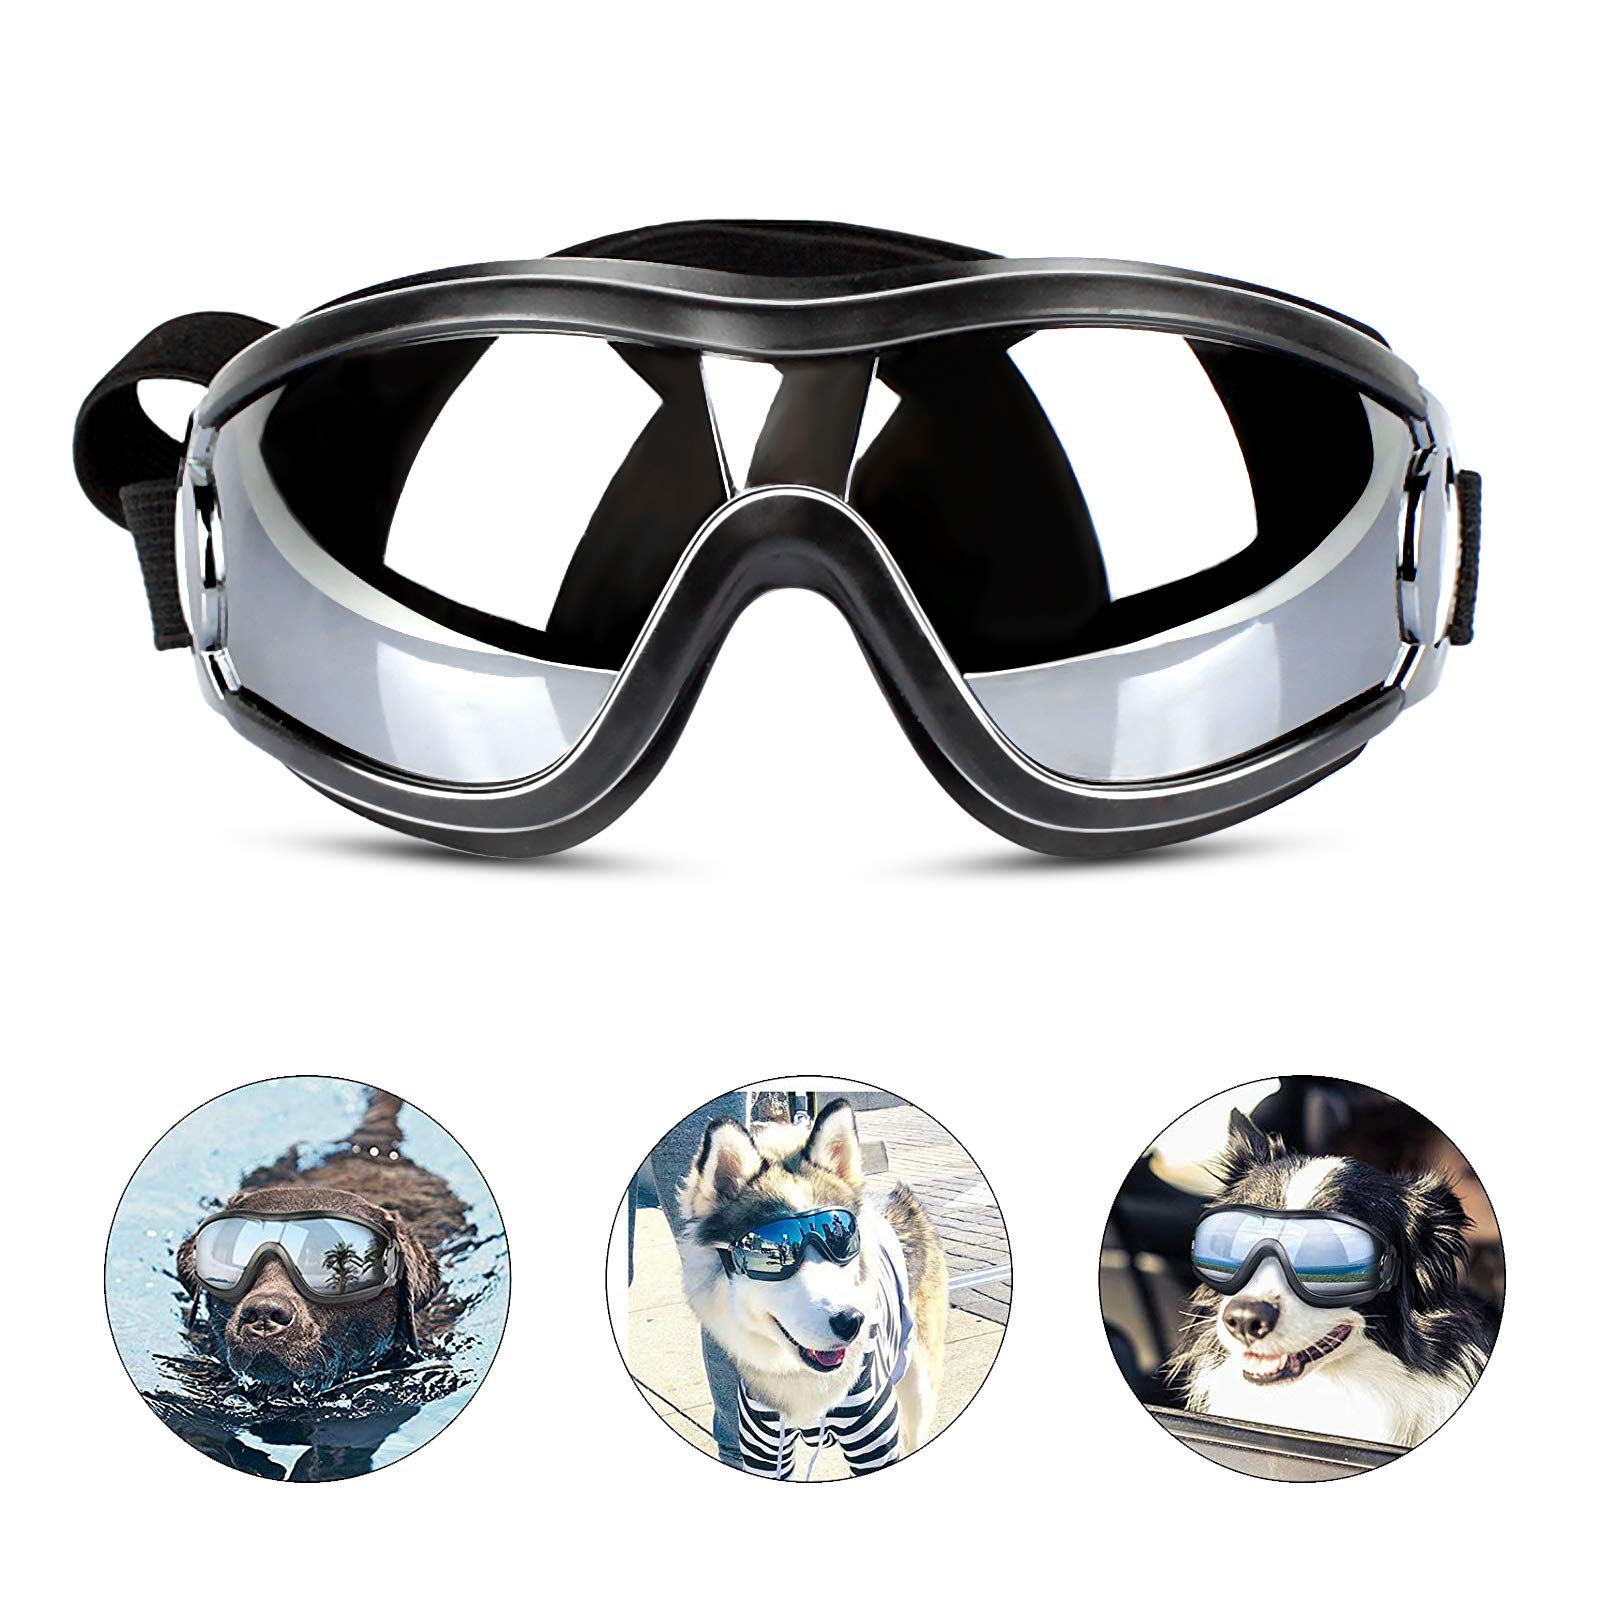 PEDOMUS Dog Sunglasses Dog Goggles Adjustable Strap for Travel Skiing and Anti-Fog Dog Snow Goggles Pet Goggles for Medium to Large Dog by PEDOMUS